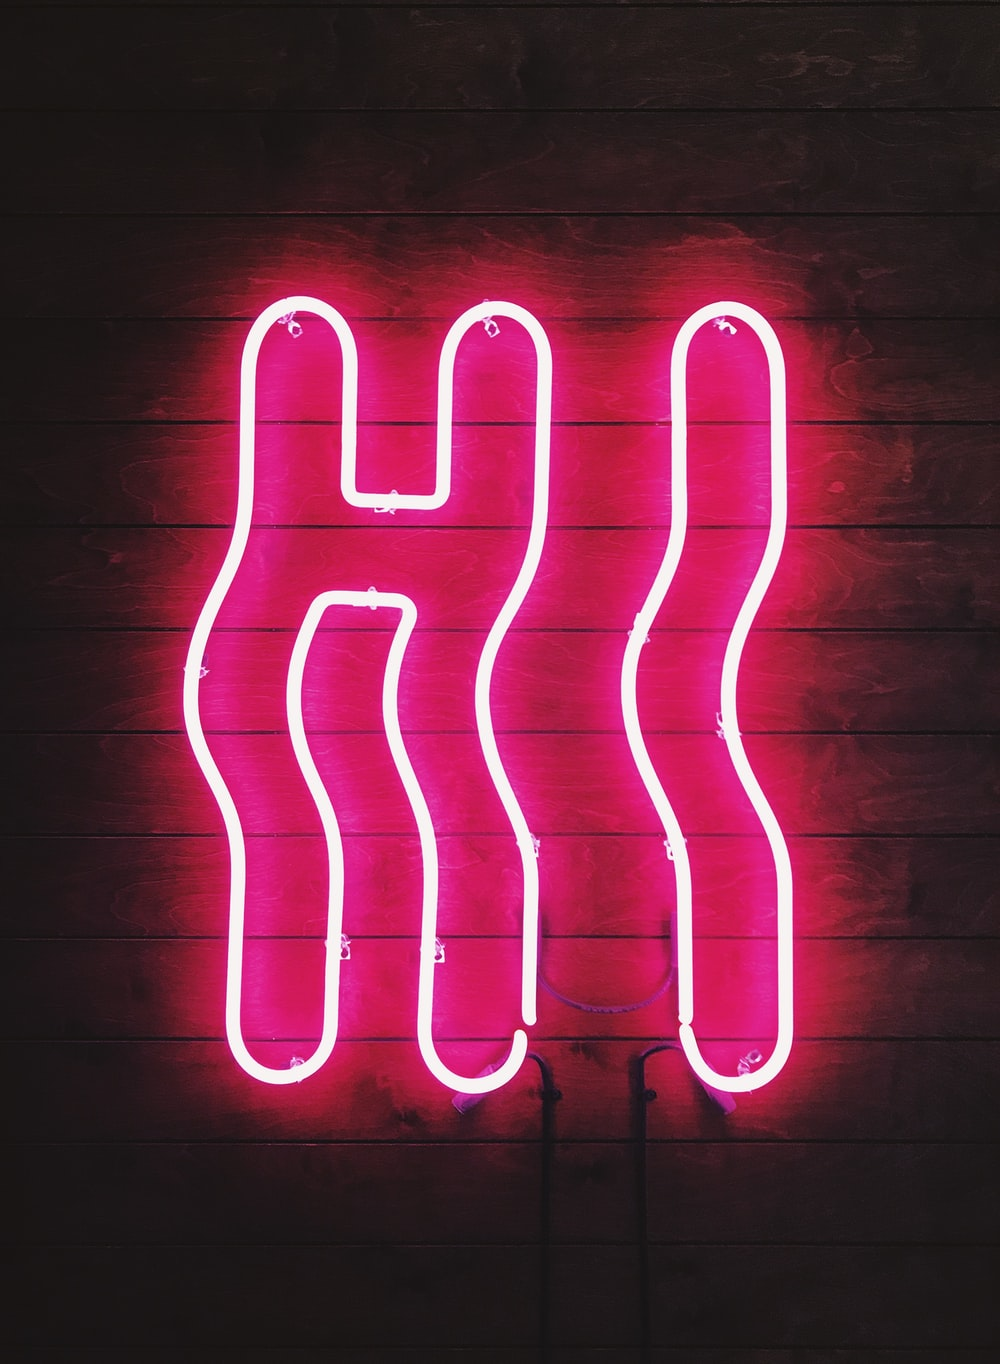 Neon Wallpapers Free Hd Download 500 Hq Unsplash We have 78+ amazing background pictures carefully picked by our community. neon wallpapers free hd download 500